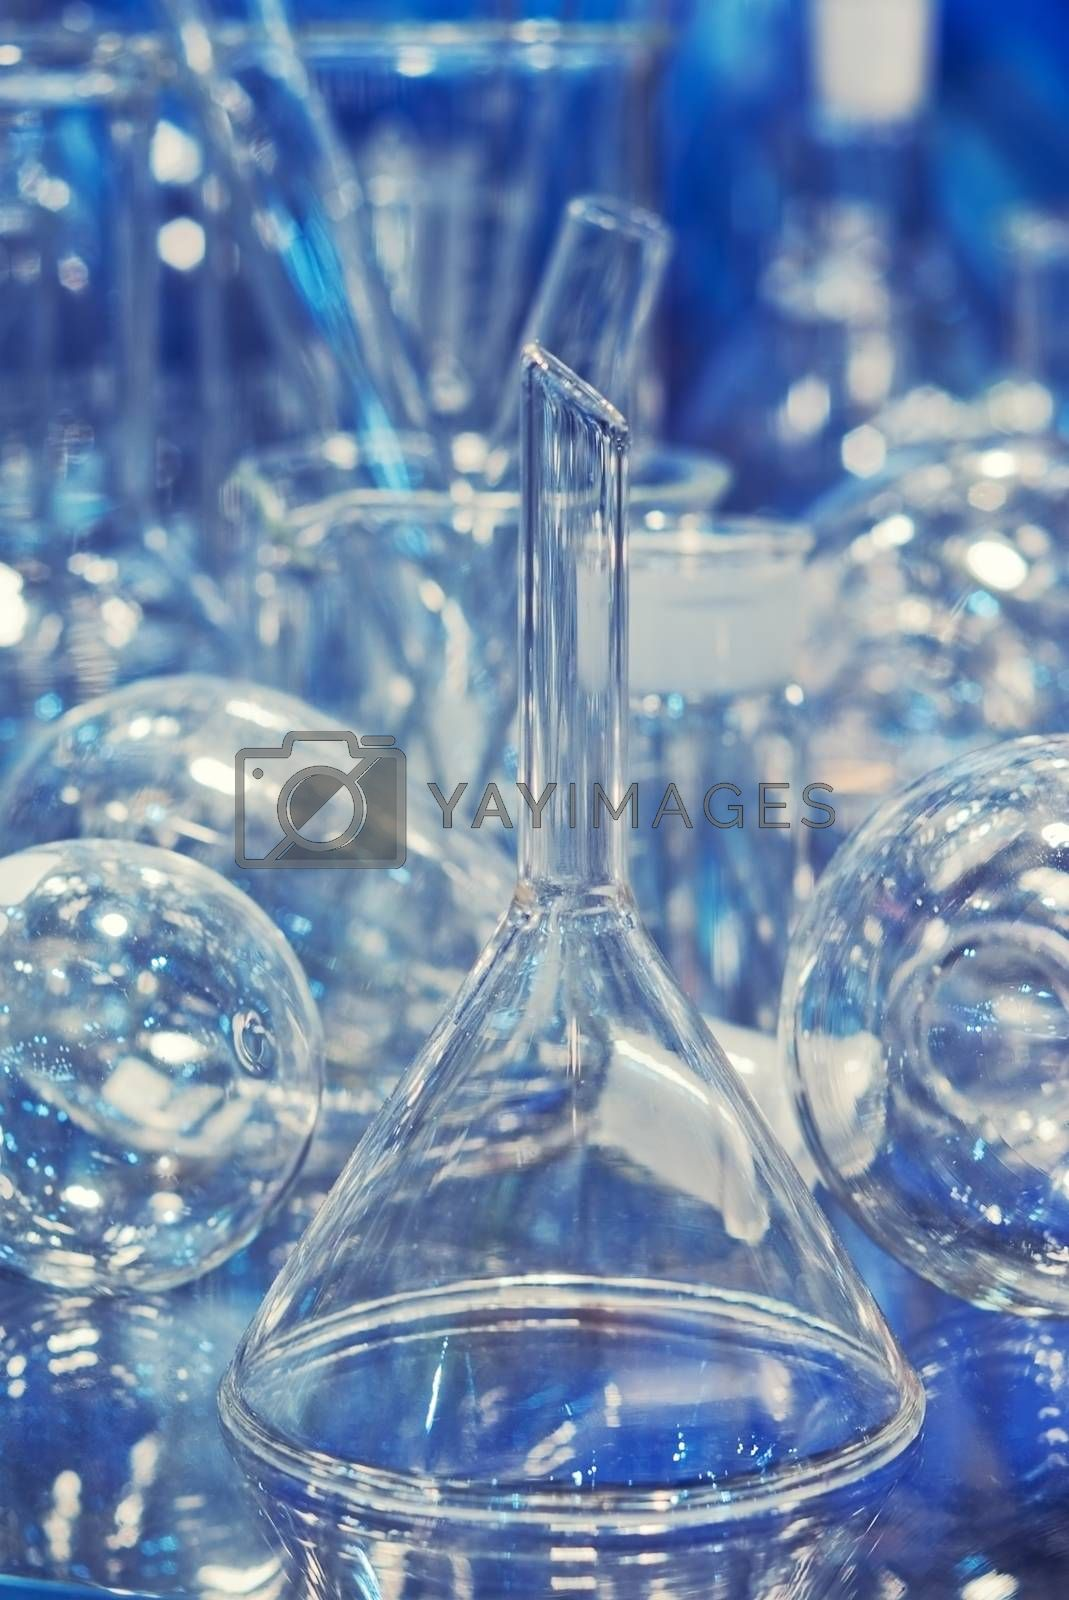 glass flasks andTest-tubes blue colors. Laboratory glassware